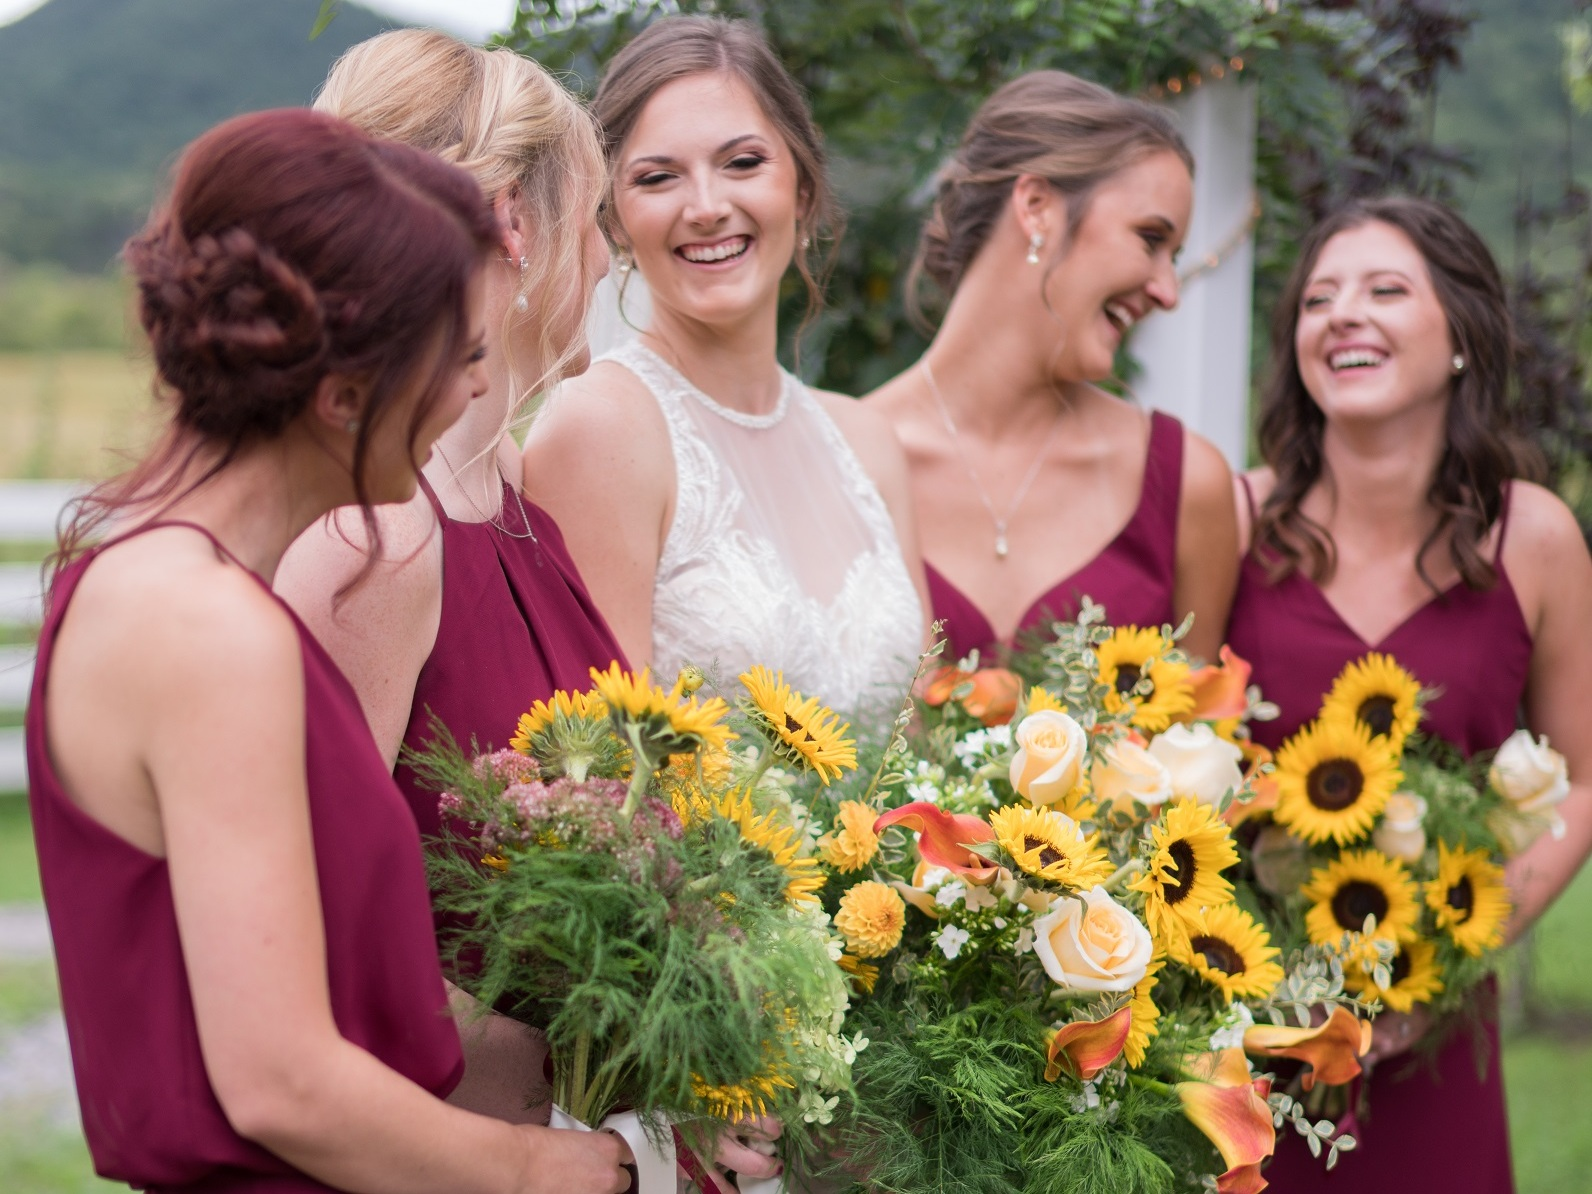 Dodging a tropical storm, this sweet couple exchanged vows outdoors beneath an arbor full of sunflowers, roses and calla lilies. We complimented the rustic reception barn with plenty of lush, local florals alongside the candlelight. #floraldesign #weddingflorals #weddingflowers #virginiawedding #virginiabride #virginiaflorist